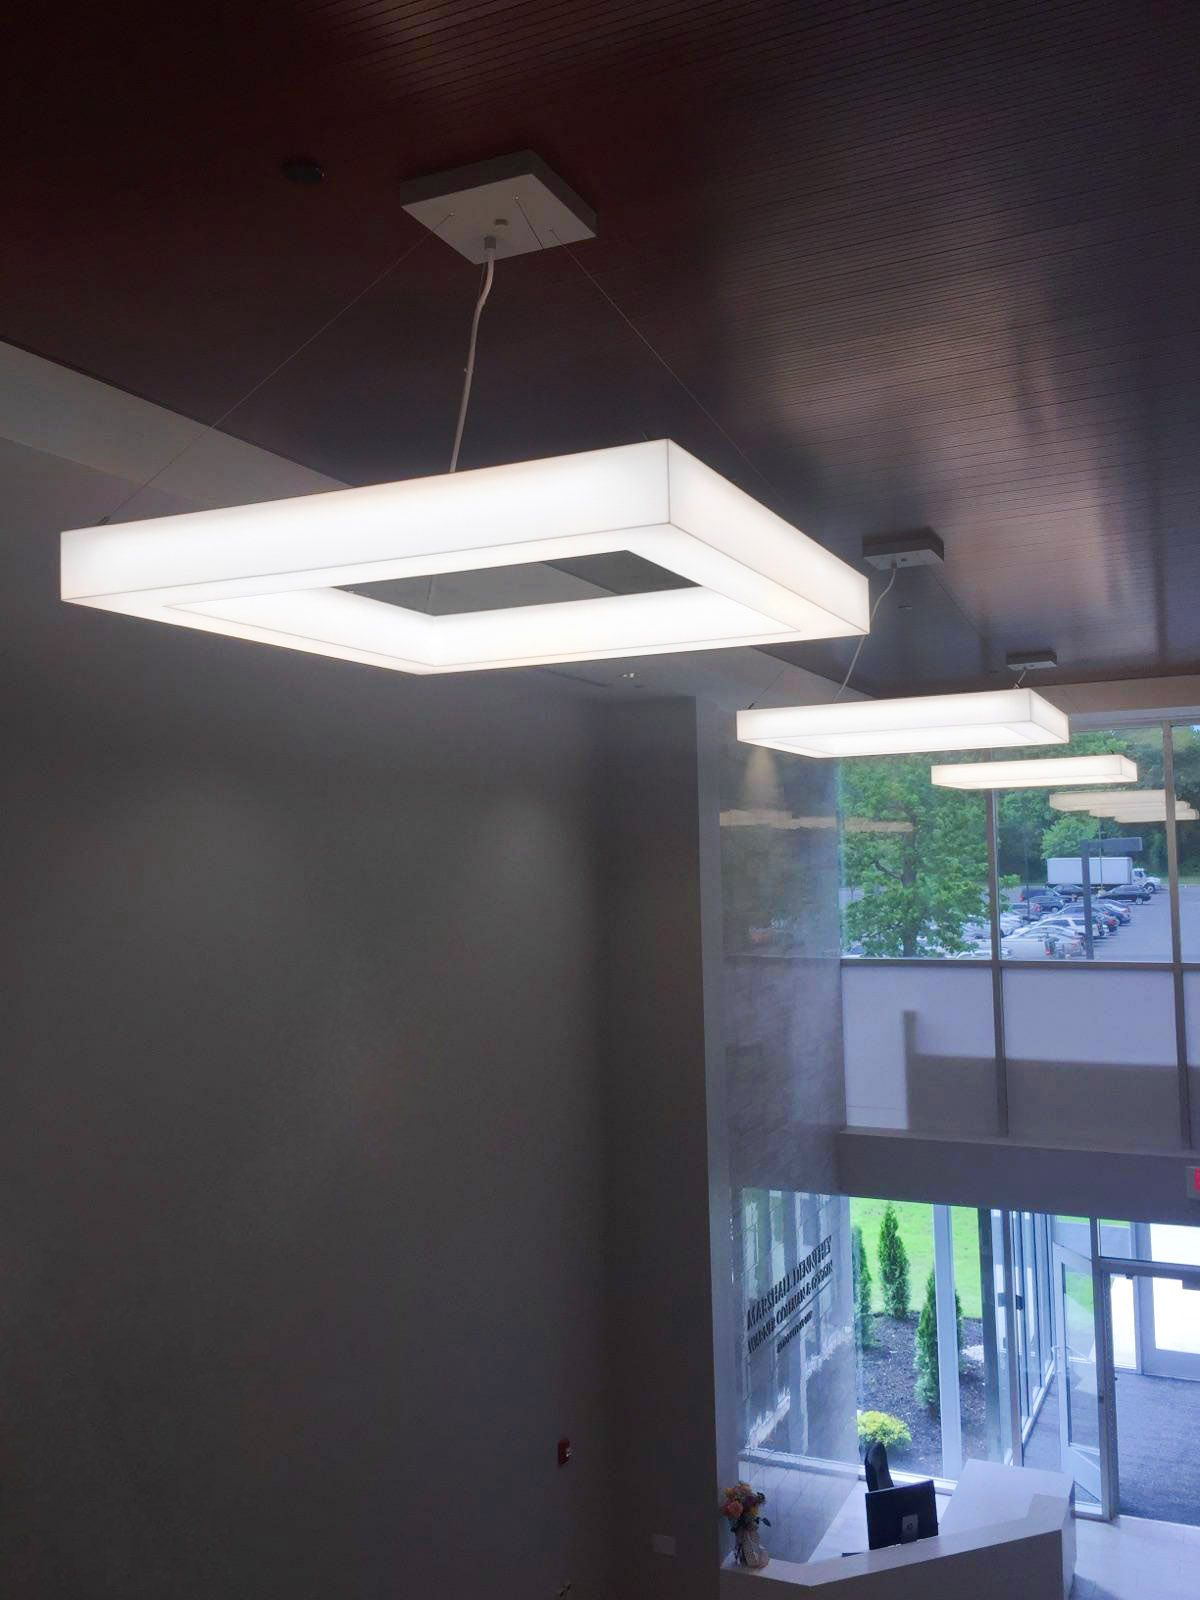 Novato Frames lobby installation. SPI Lighting. & Novato Frames lobby installation. SPI Lighting. | Architectural ...